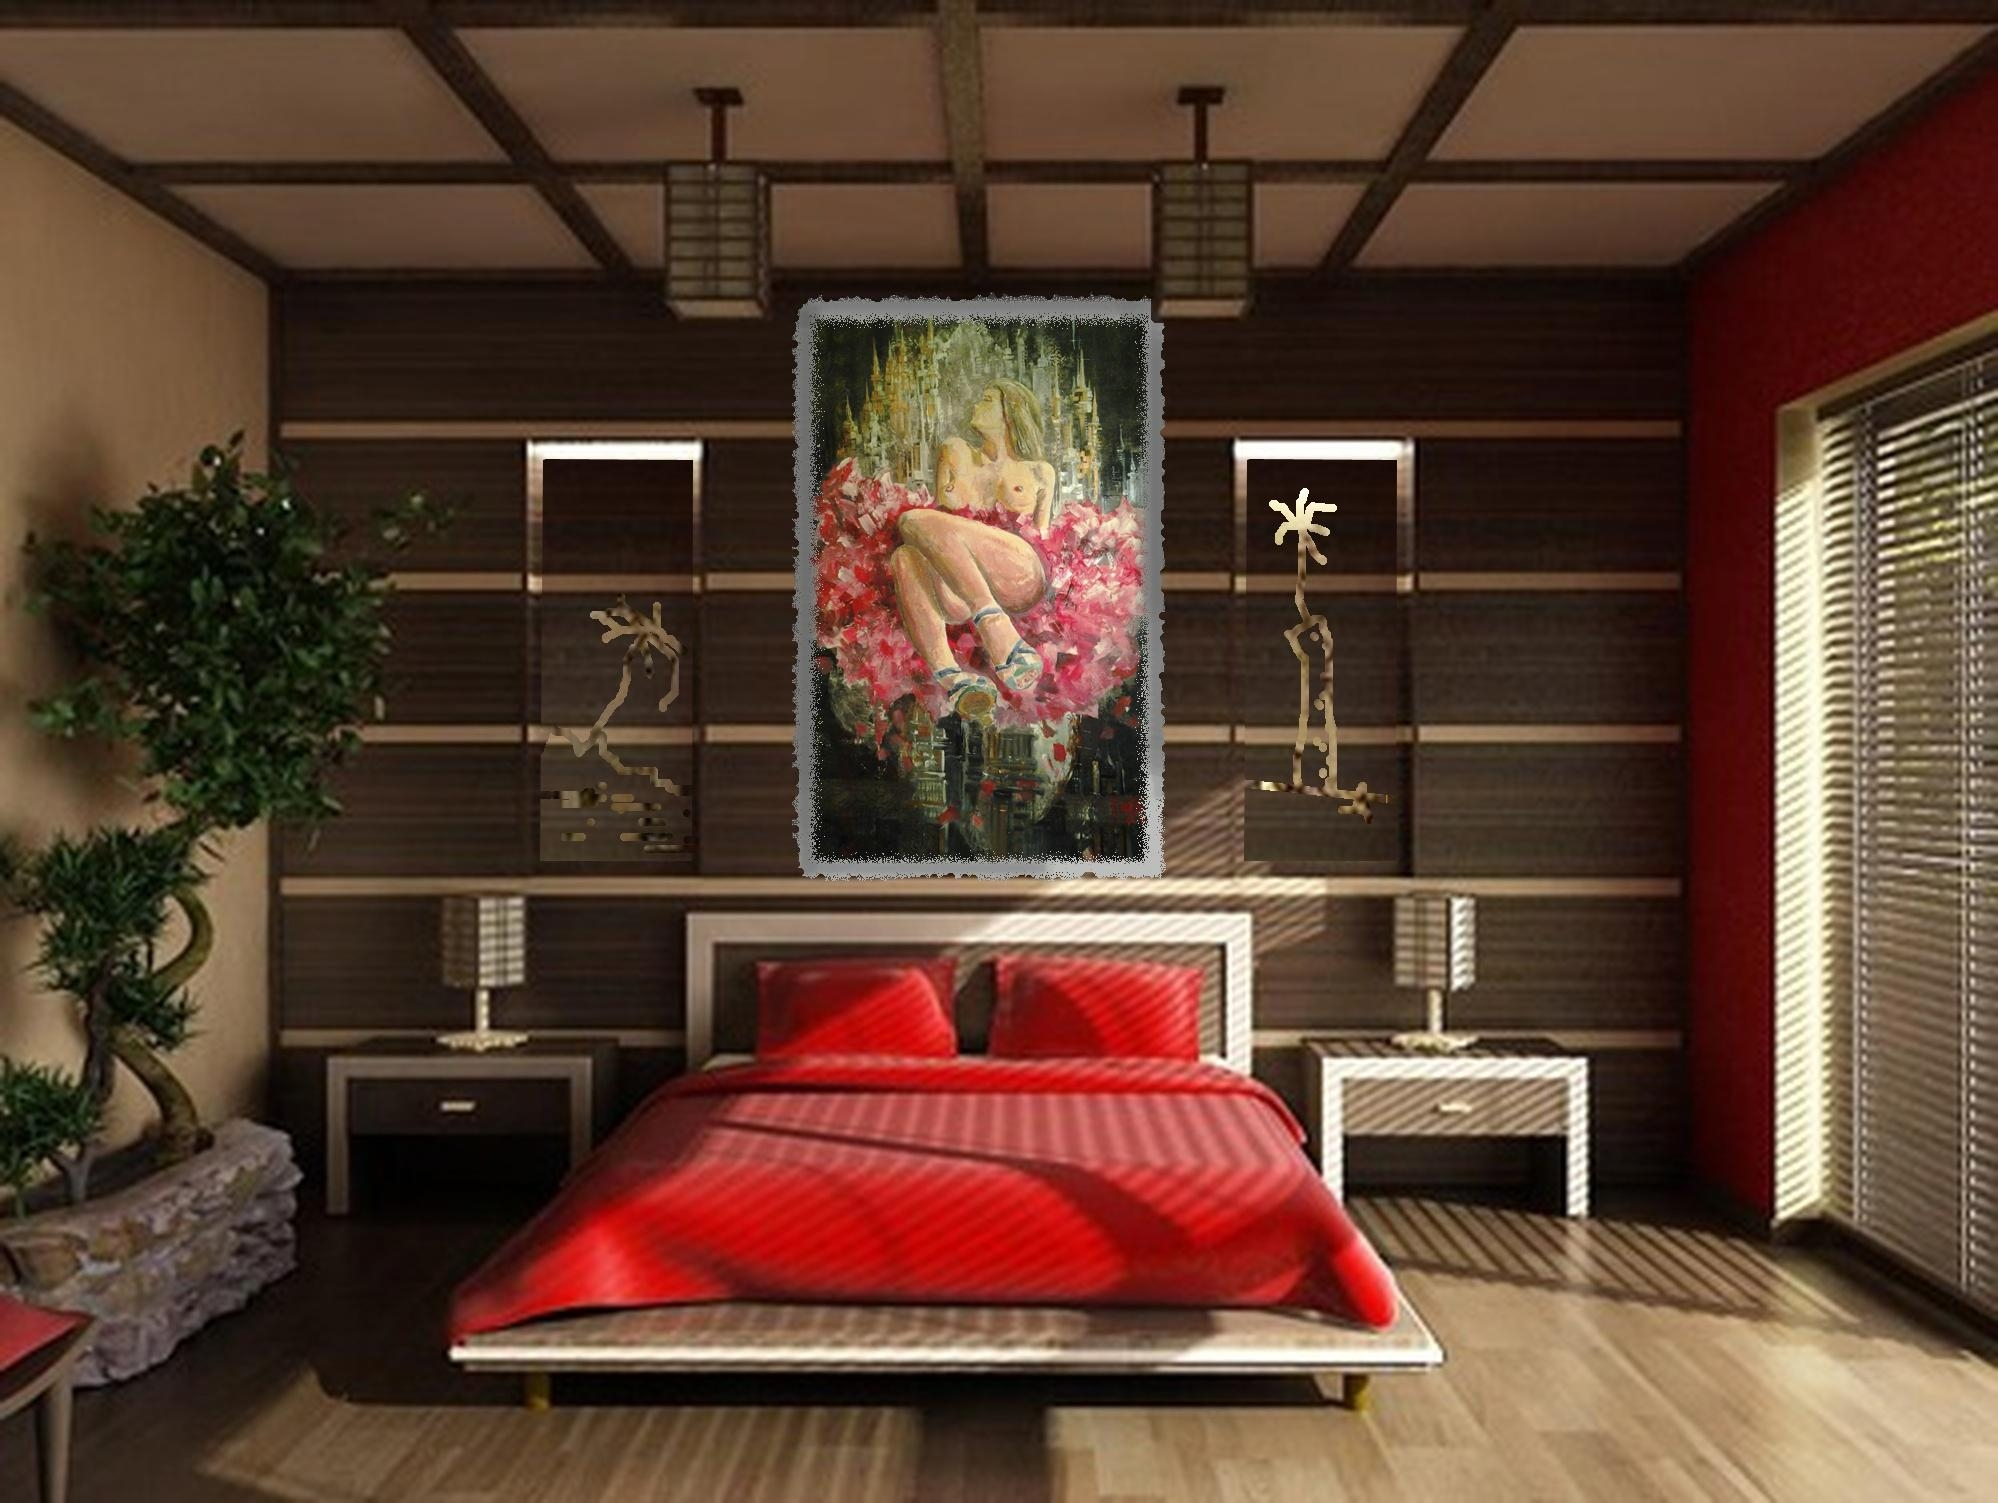 Bedroom : Asian Themed Bedroom Ideas (View 15 of 20)